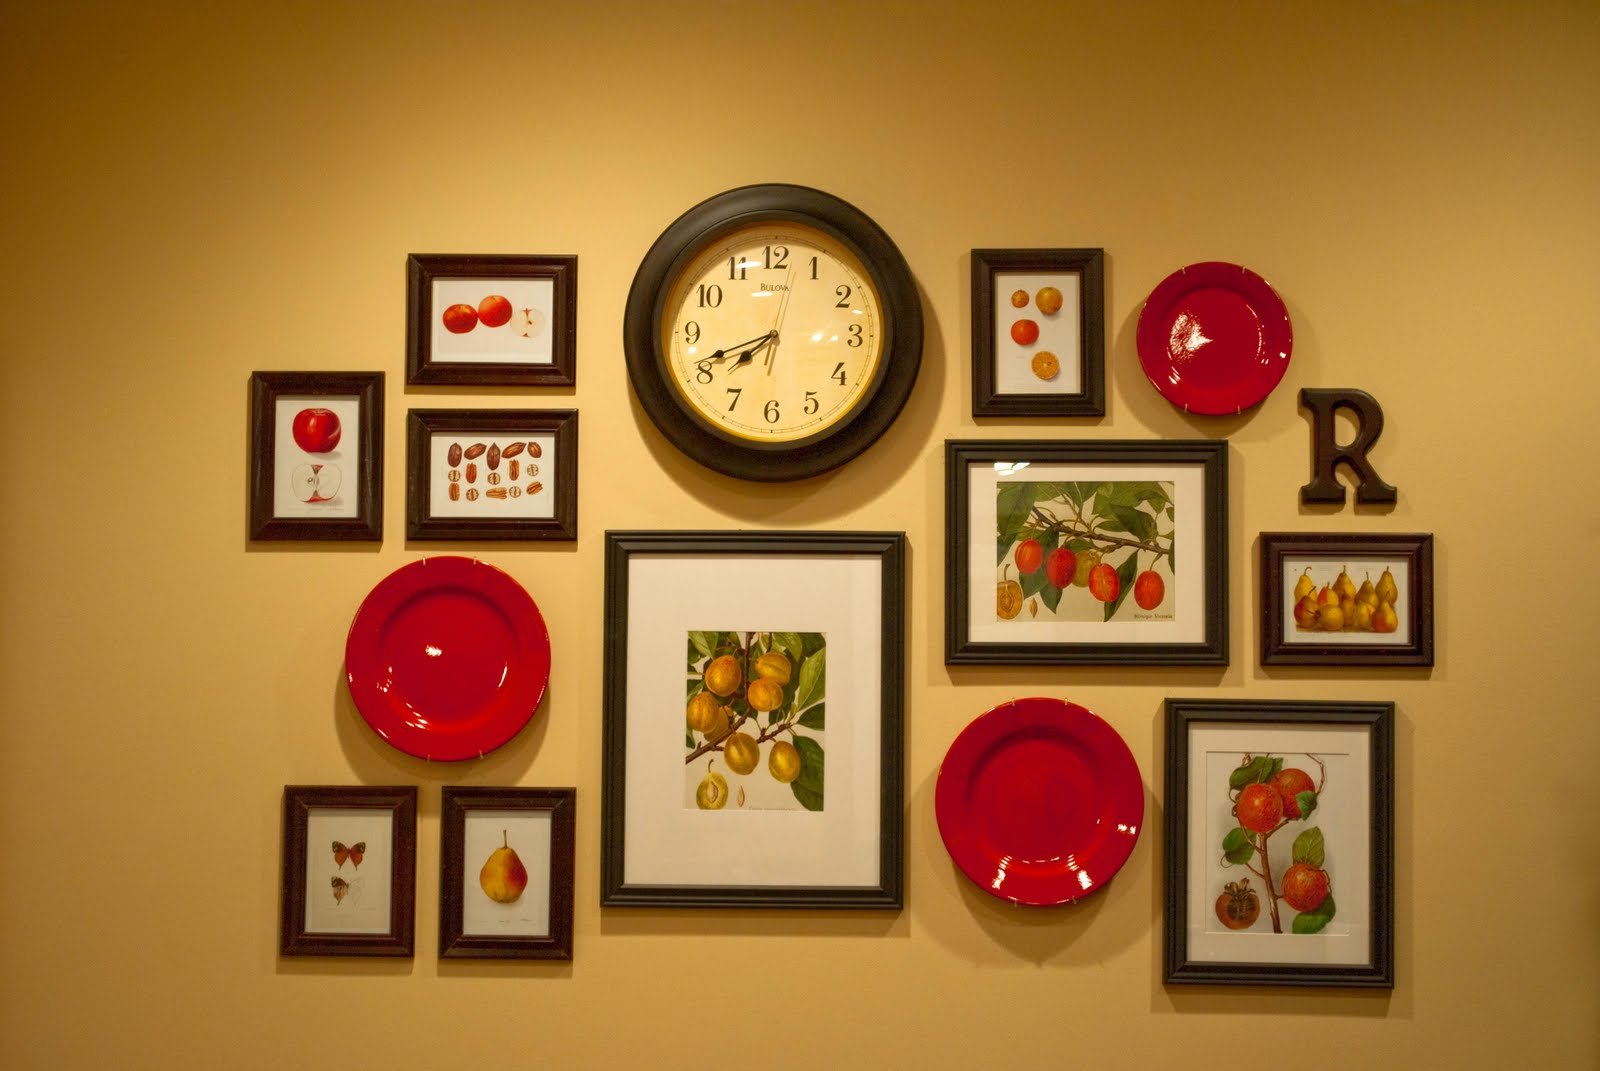 Kitchen Gallery Wall - The Thrifty Abode